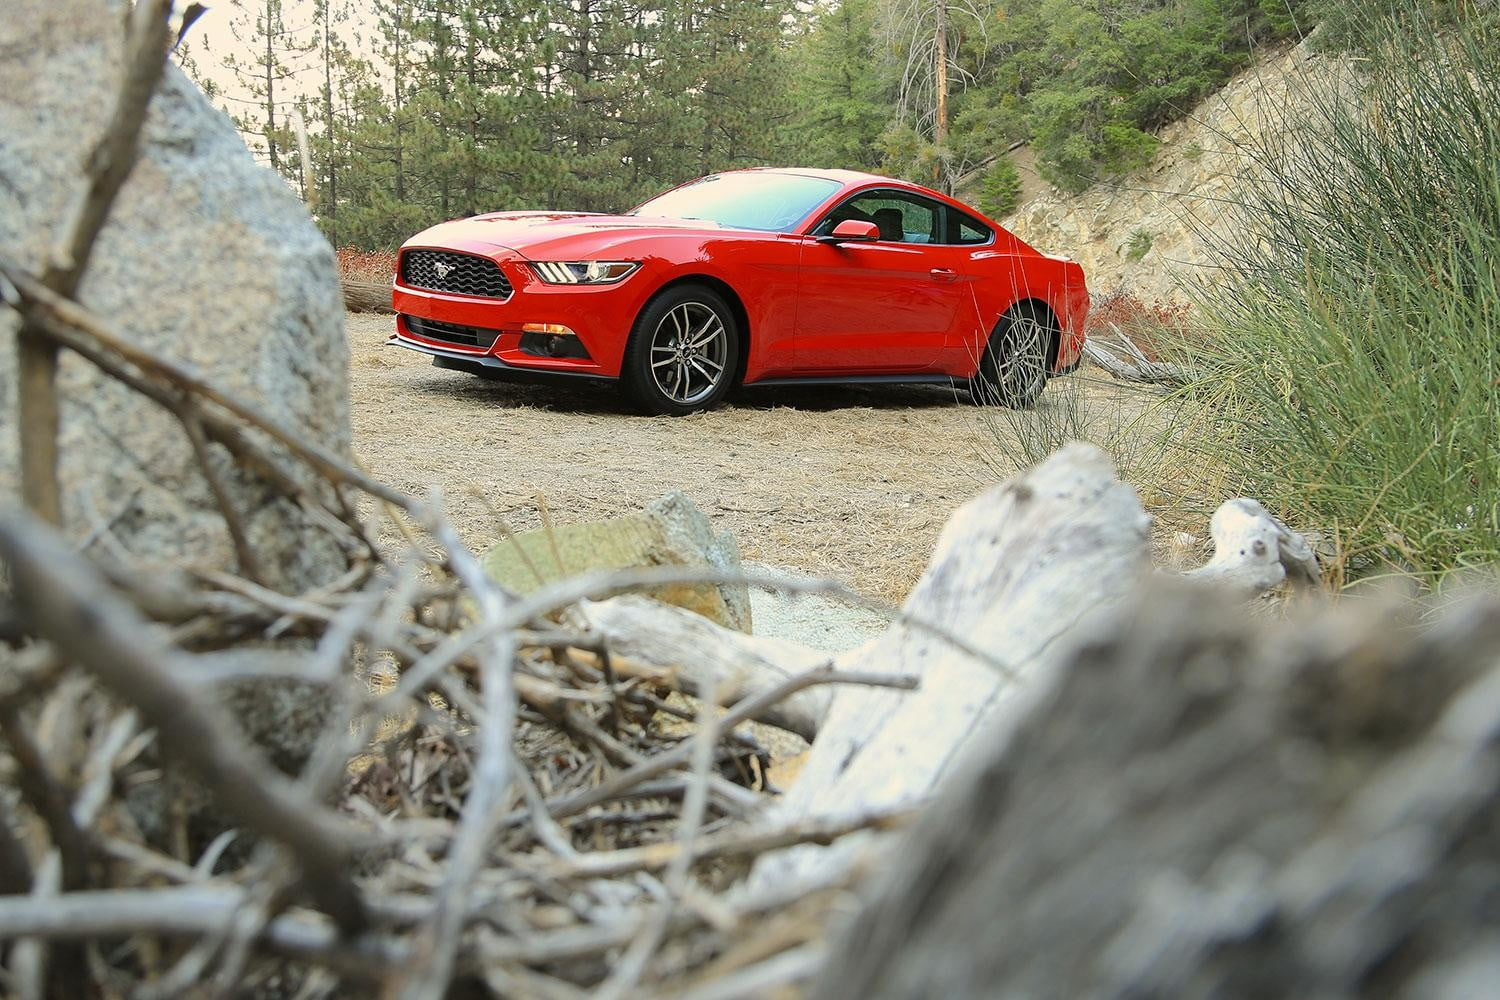 2015 Ford Mustang side